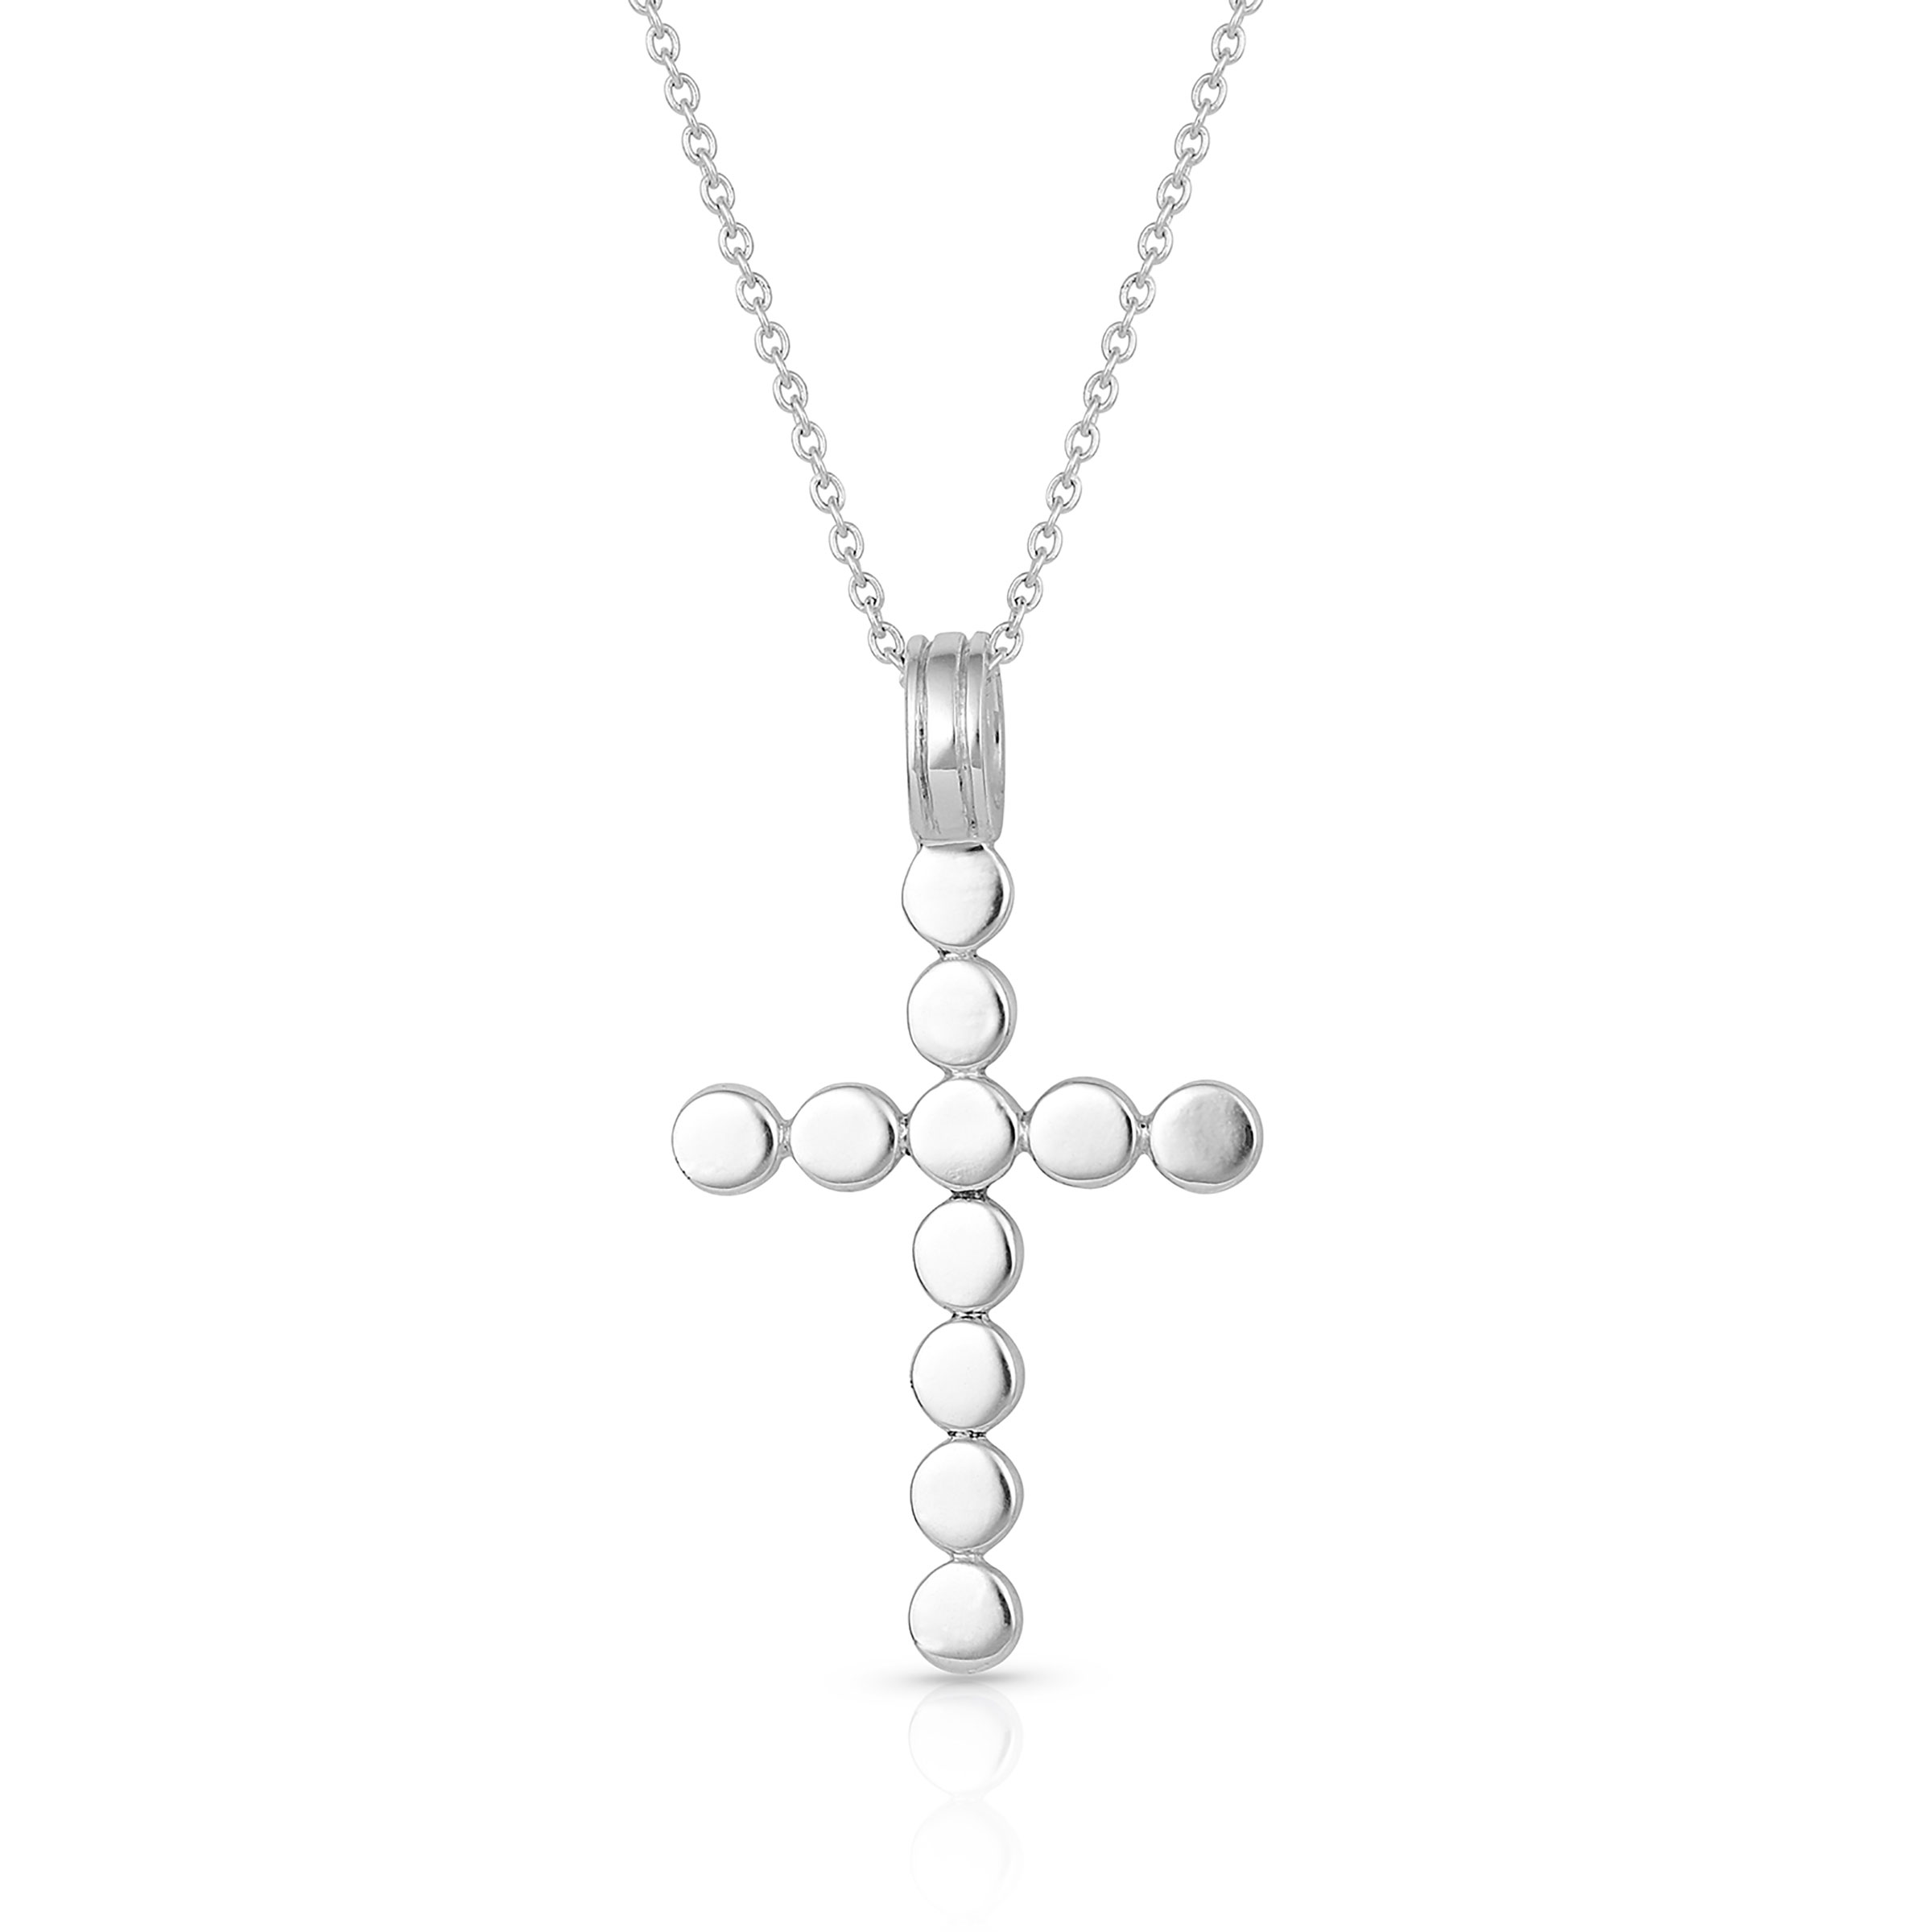 Serendipitous Cross Necklace